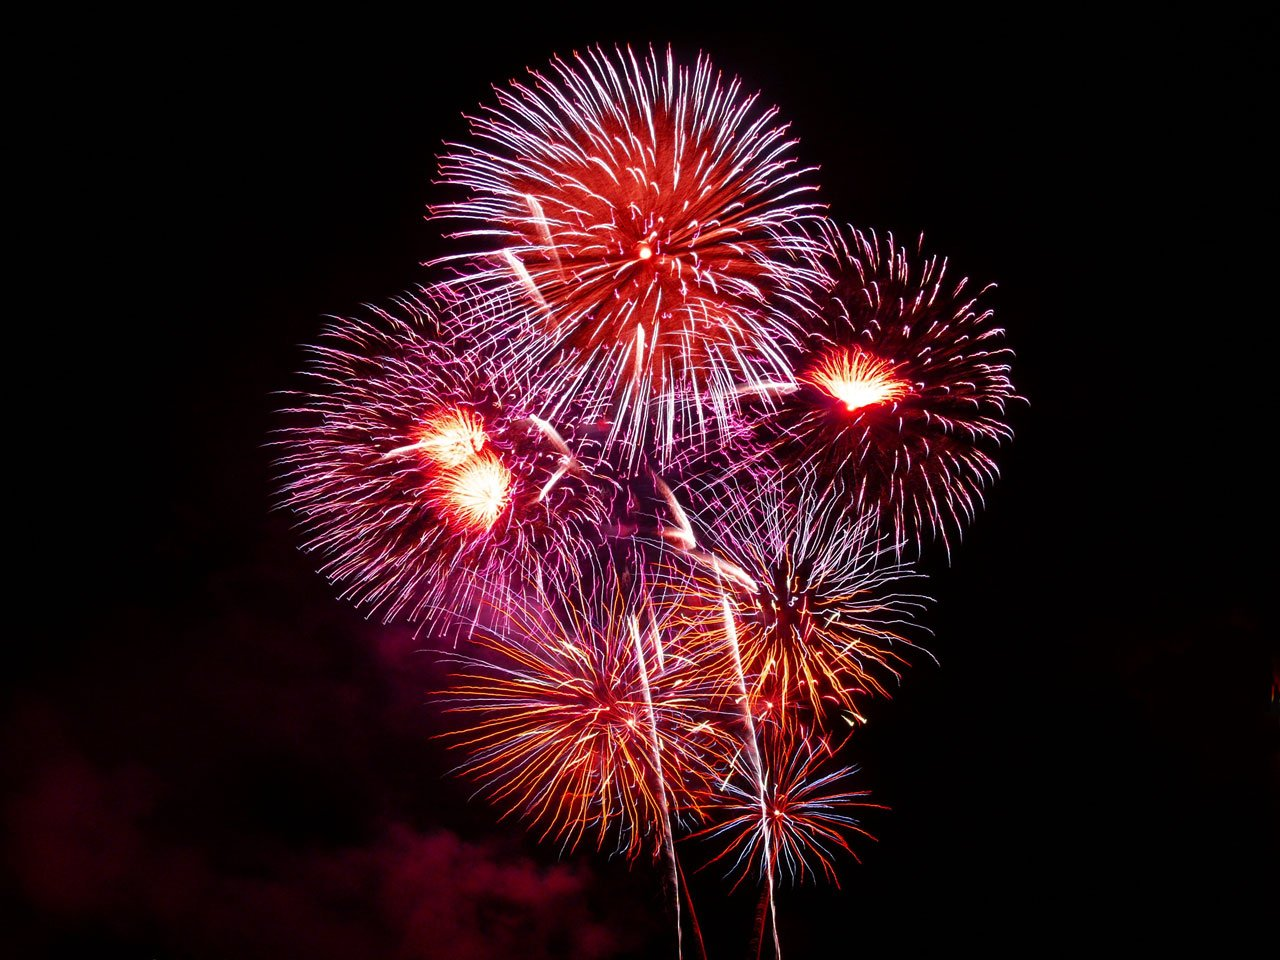 Where to see Fireworks in Knoxville, Tennessee